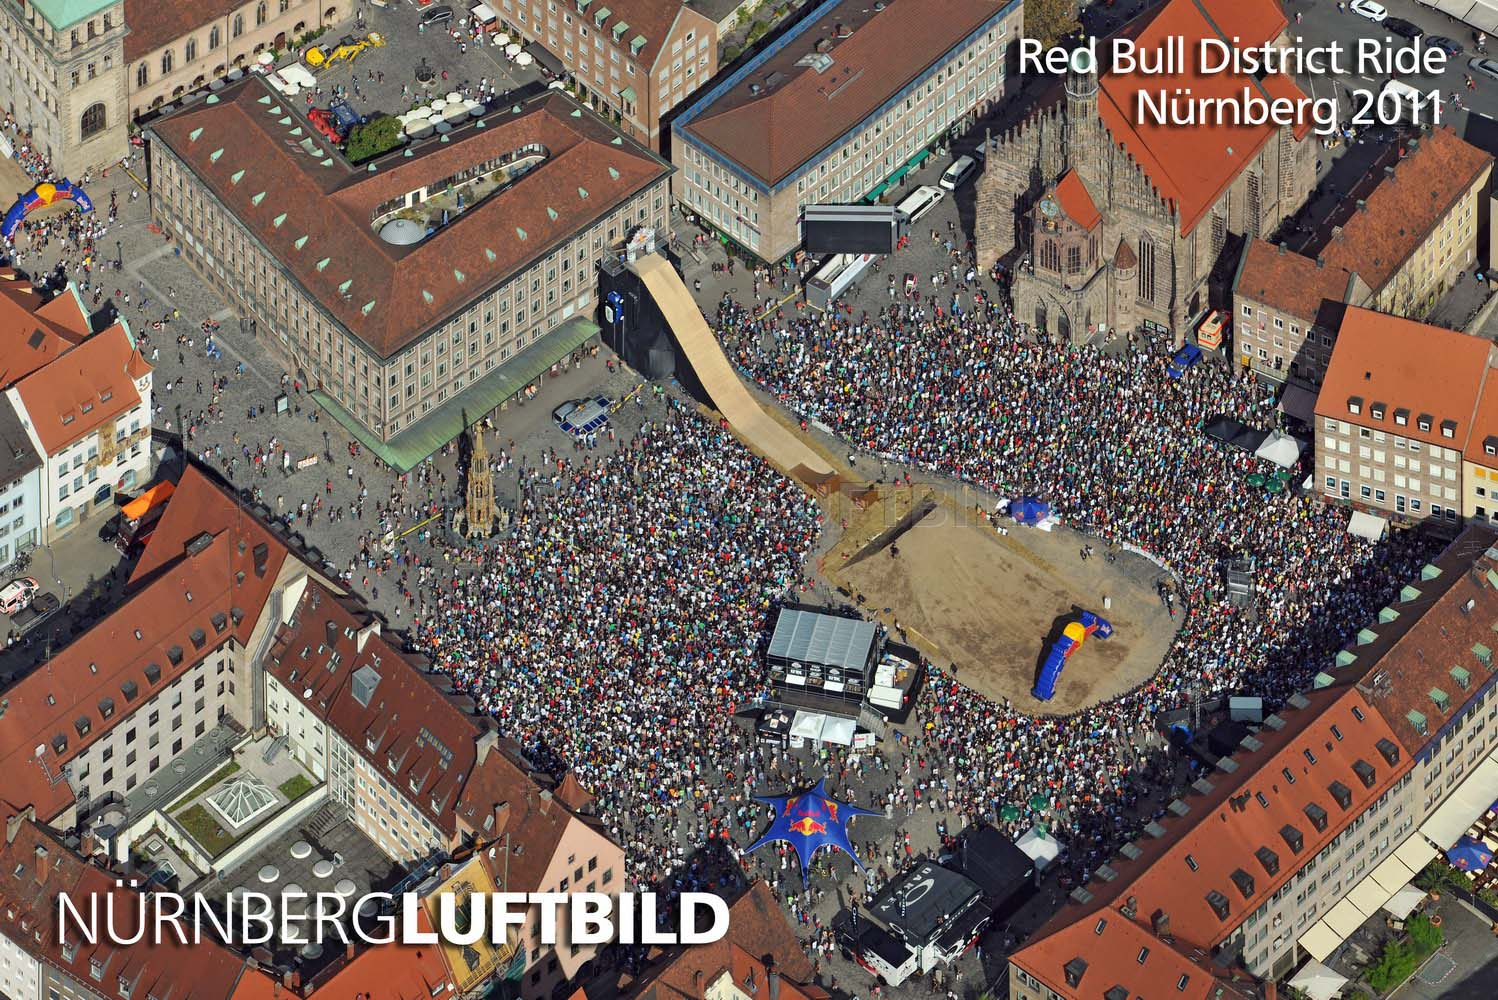 Red Bull District Ride, Nürnberg 2011, Luftaufnahme